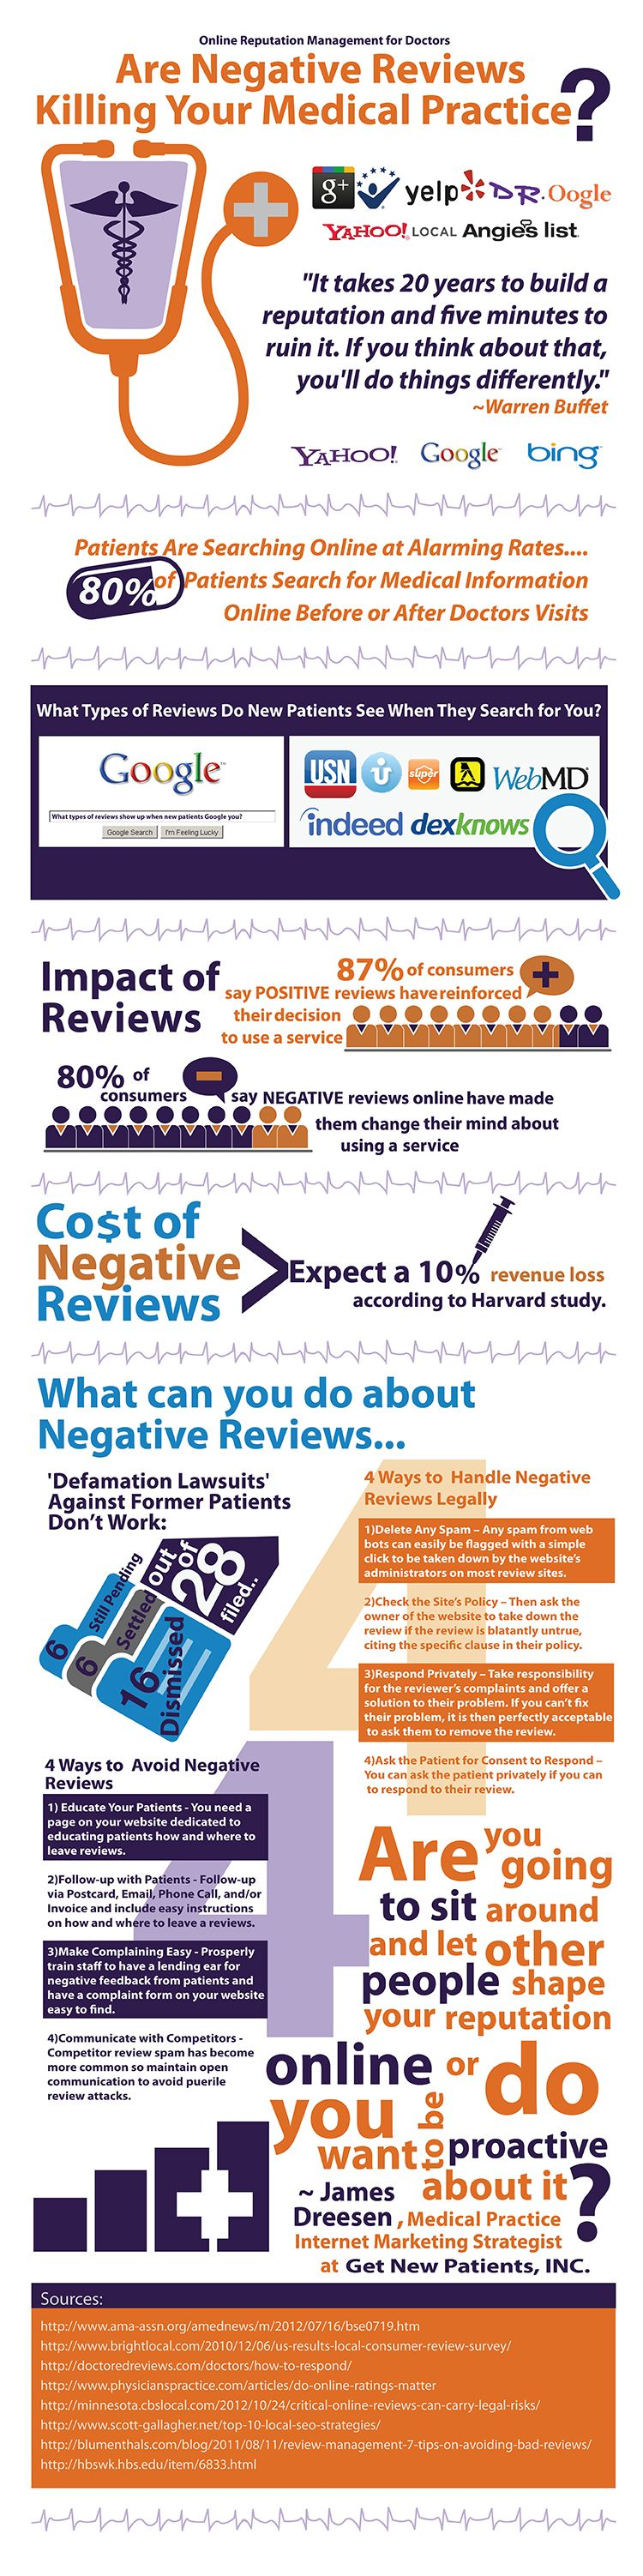 Are Negative Reviews Killing Your Medical Practice?